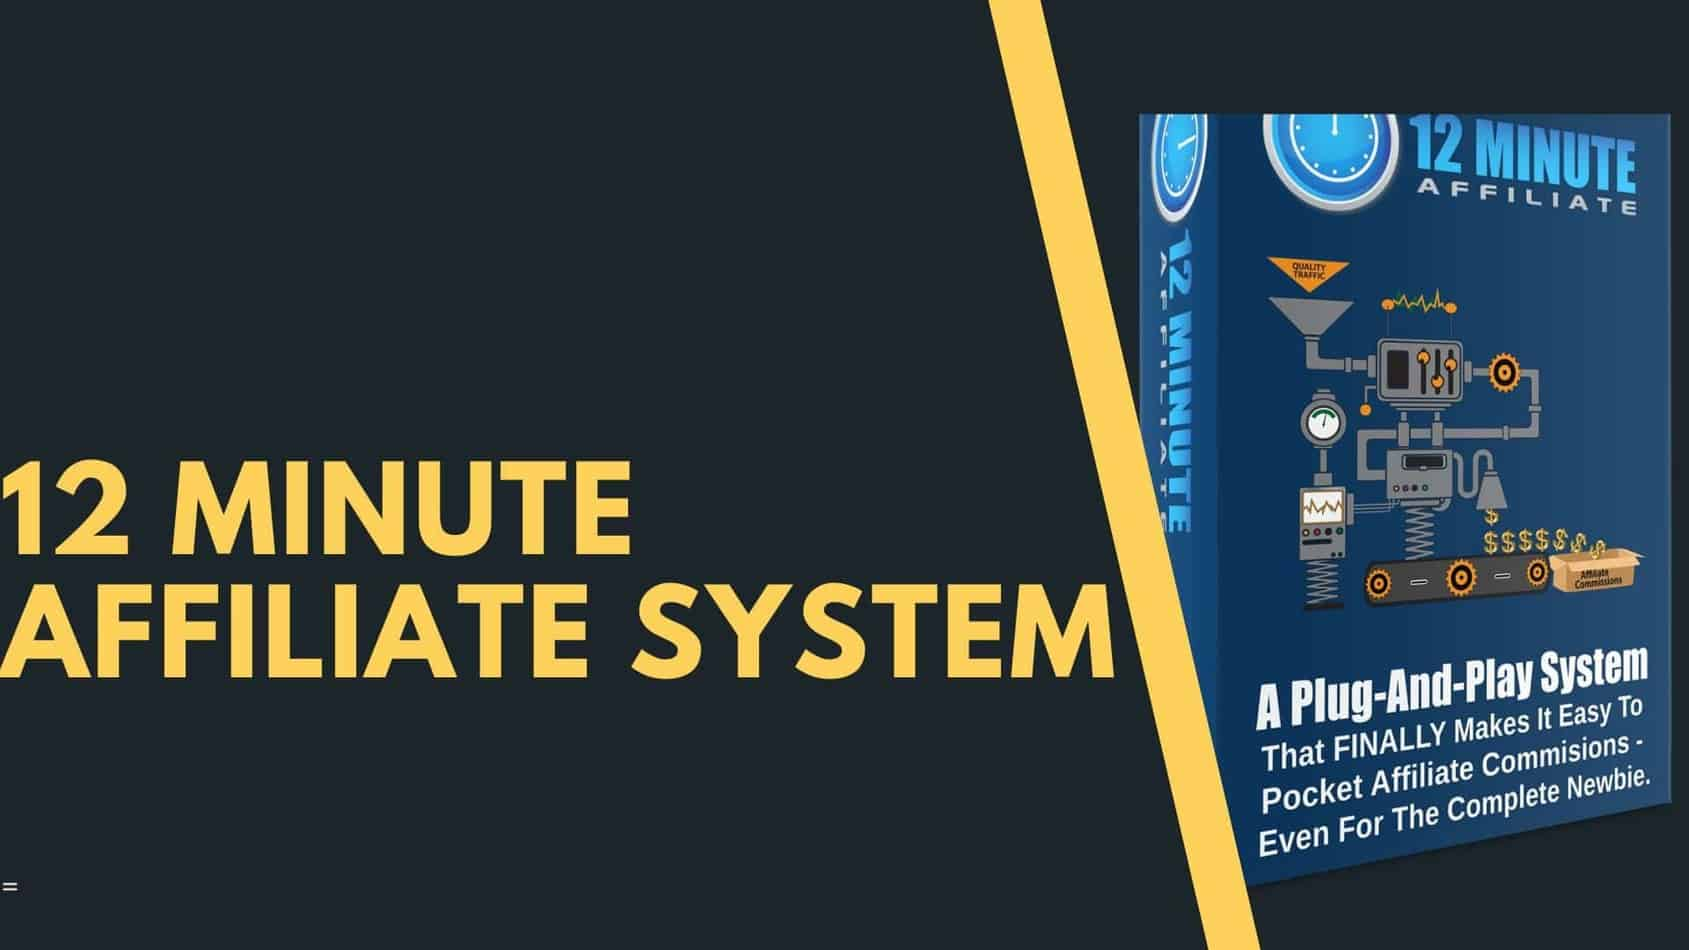 Buy 12 Minute Affiliate System  Full Specifications